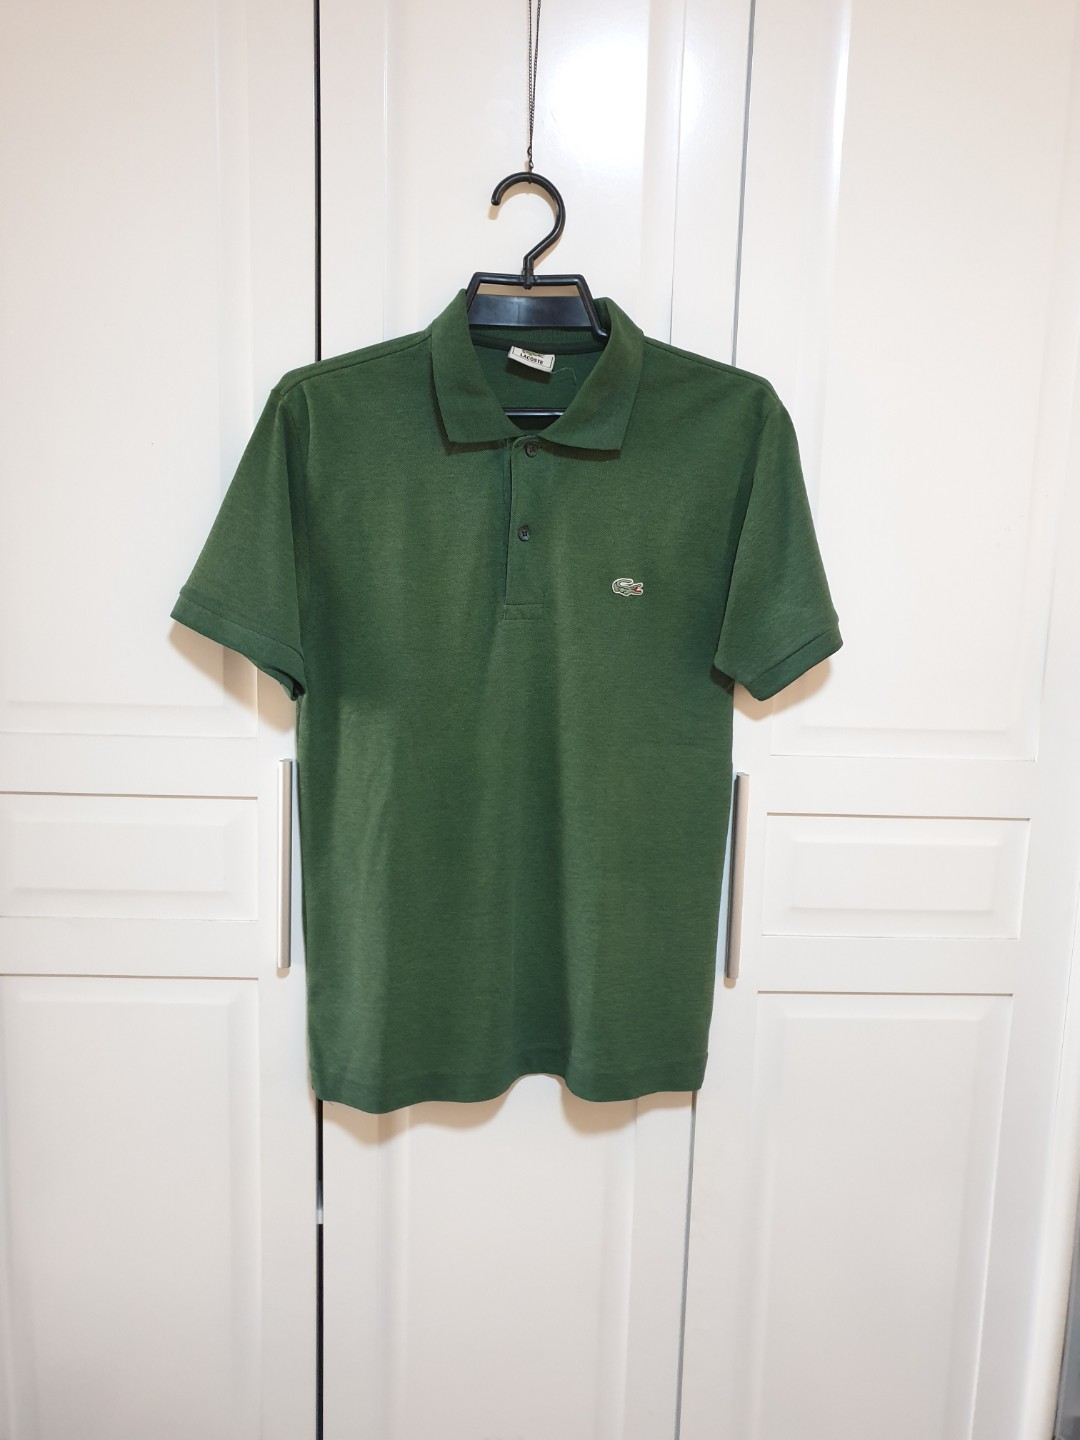 9898a2d5 LACOSTE Men's Polo Shirt, Men's Fashion, Clothes, Tops on Carousell